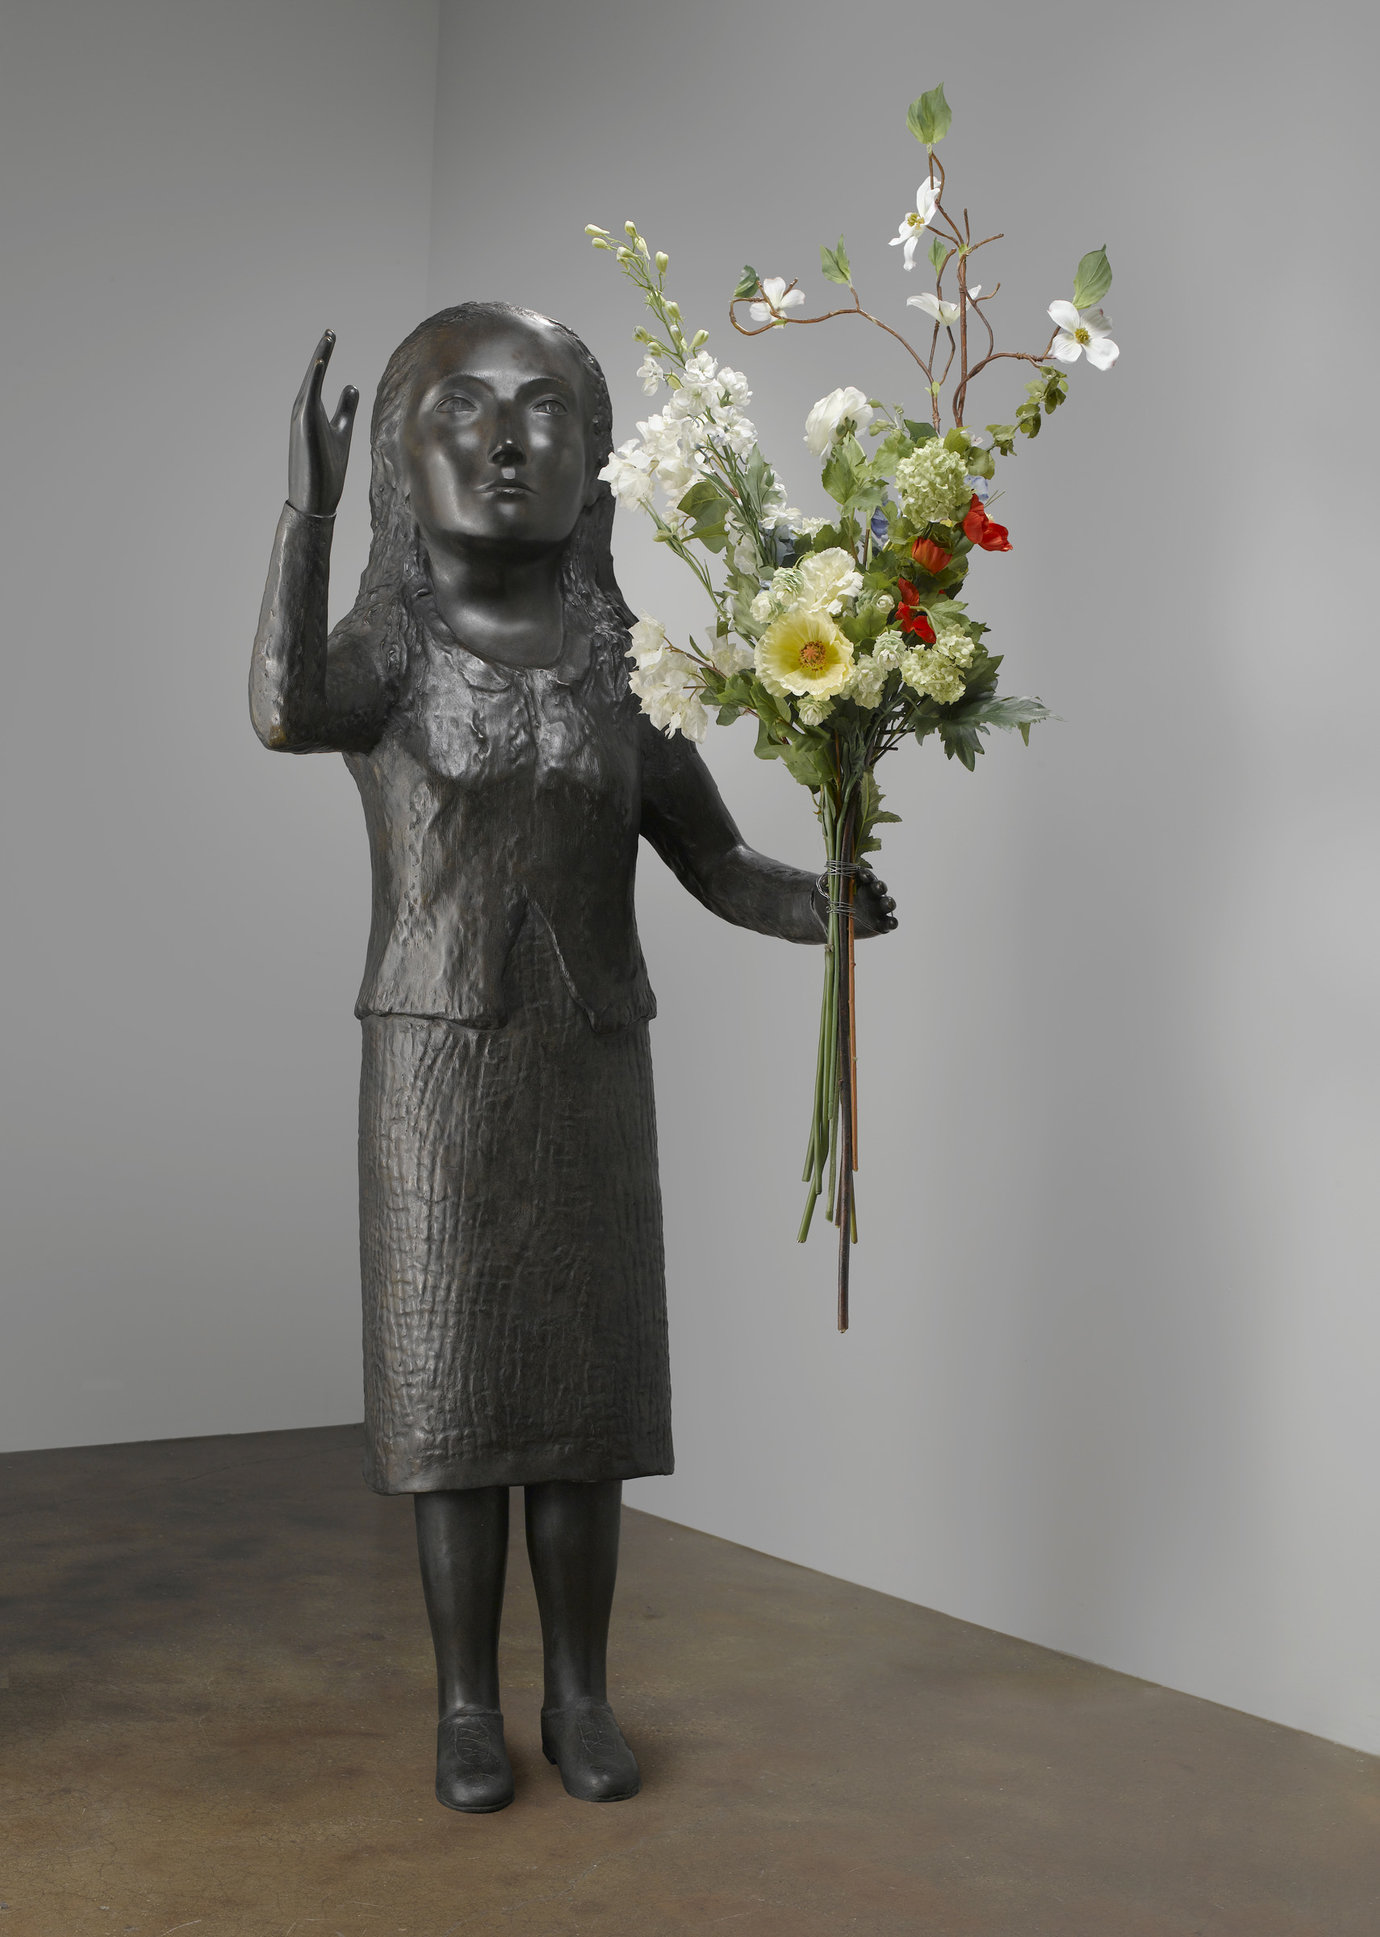 ", 2009. Bronze, 64-1/2"" x 25"" x 21"" (163.8 cm x 63.5 cm x 53.3 cm), figure&#x000A;53-1/2"" x 20"" x 17-1/2"" (135.9 cm x 50.8 cm x 44.4 cm), flowers, variable."